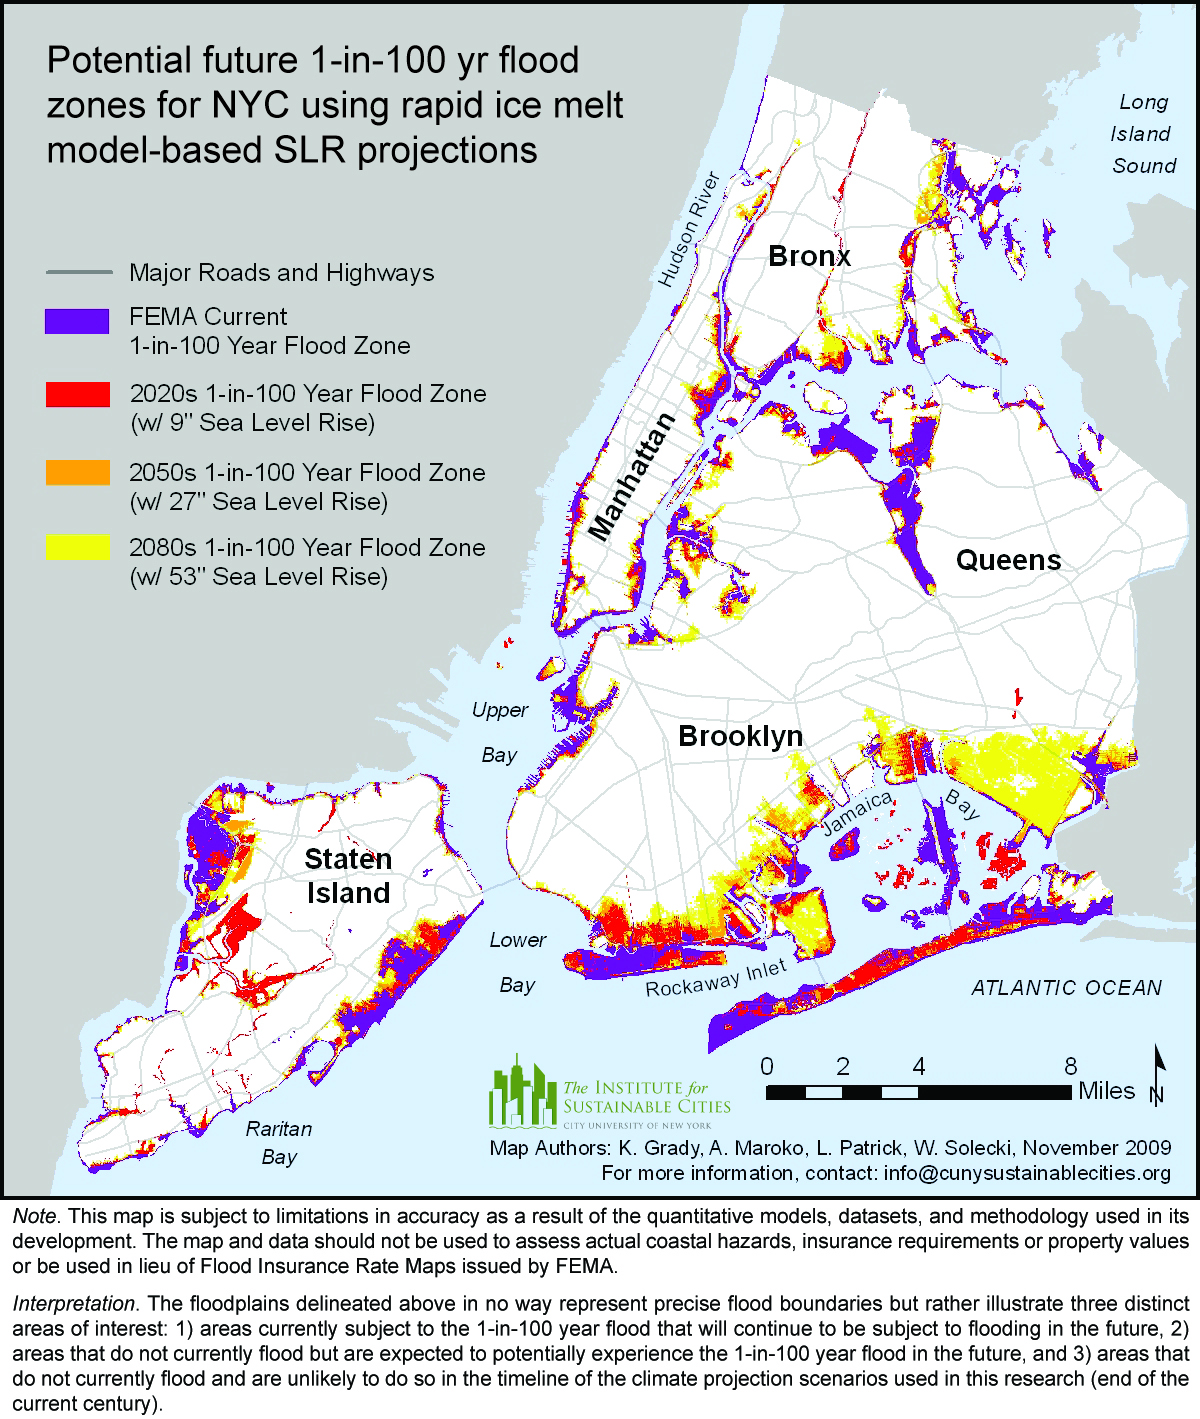 areas flooded in new york city by the 1 in100 year flood with future sea level rise uming rapid ice melt current fema 1 in100 year flood zone purple